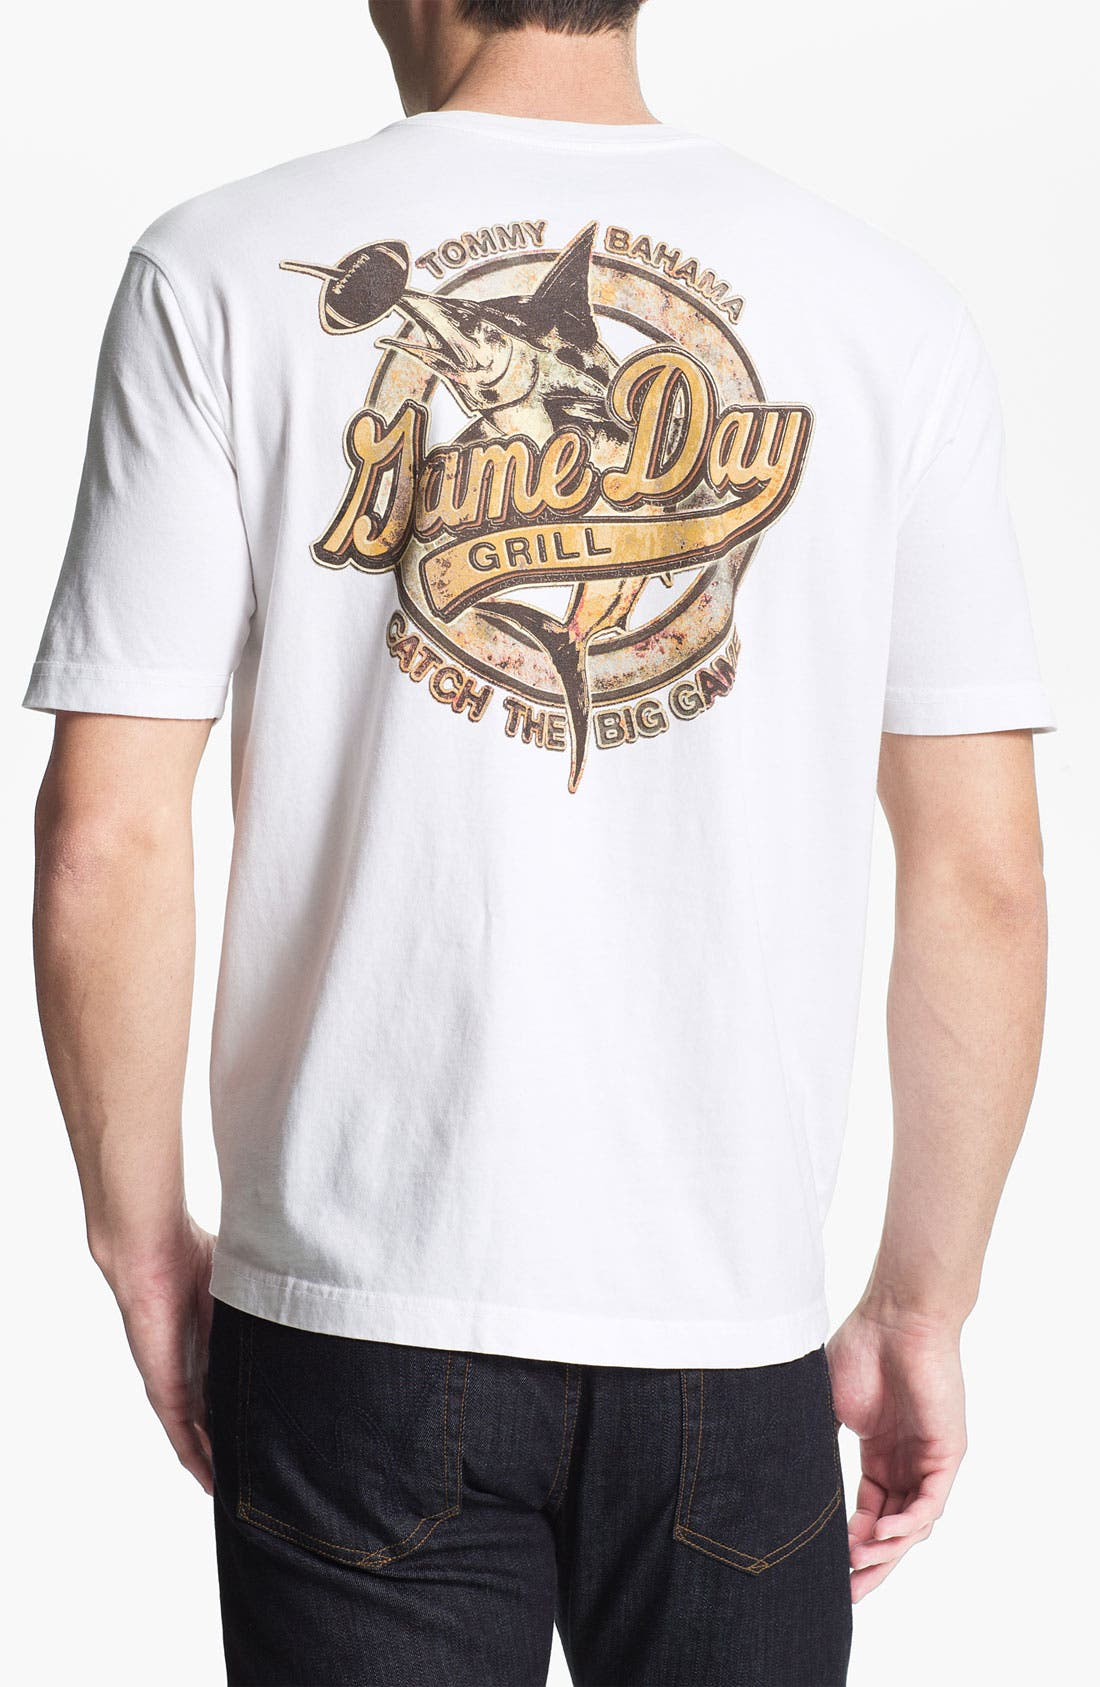 Alternate Image 1 Selected - Tommy Bahama 'Game Day Grill' T-Shirt